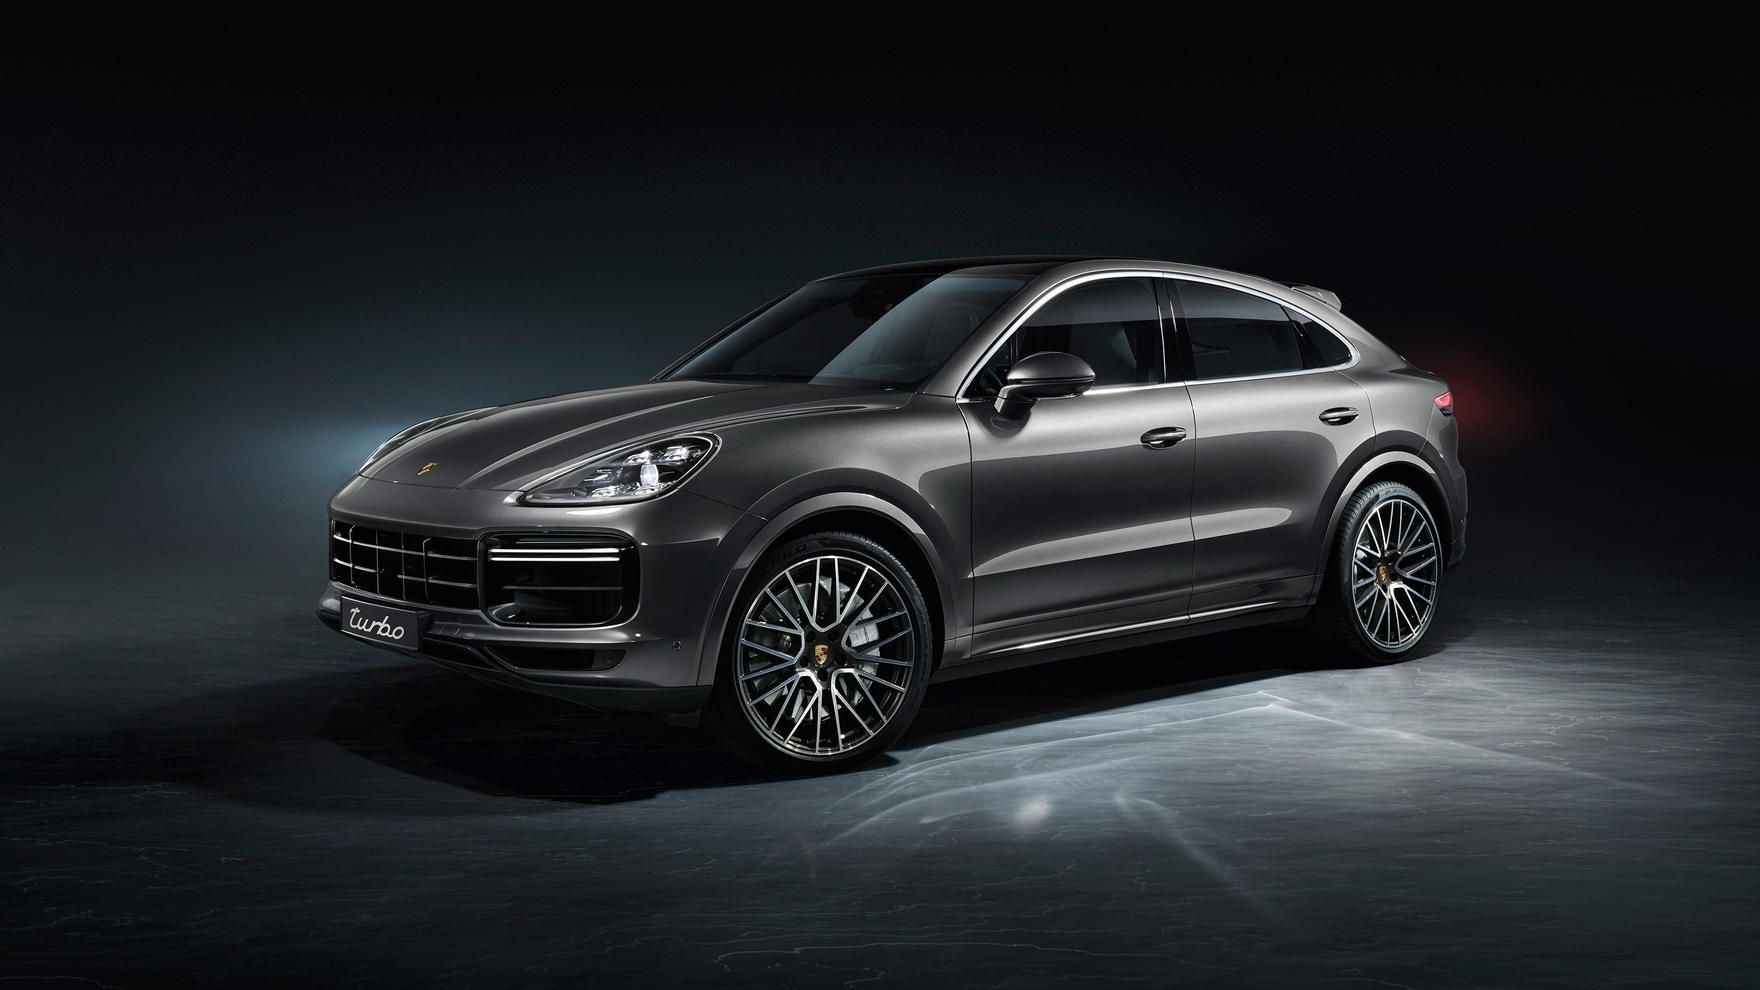 The 2020 Porsche Cayenne Coupe Is The Bmw X6 Rival You Didn T Know You Wanted Top Speed Cayenne Turbo Porsche Cayenne Bmw X6